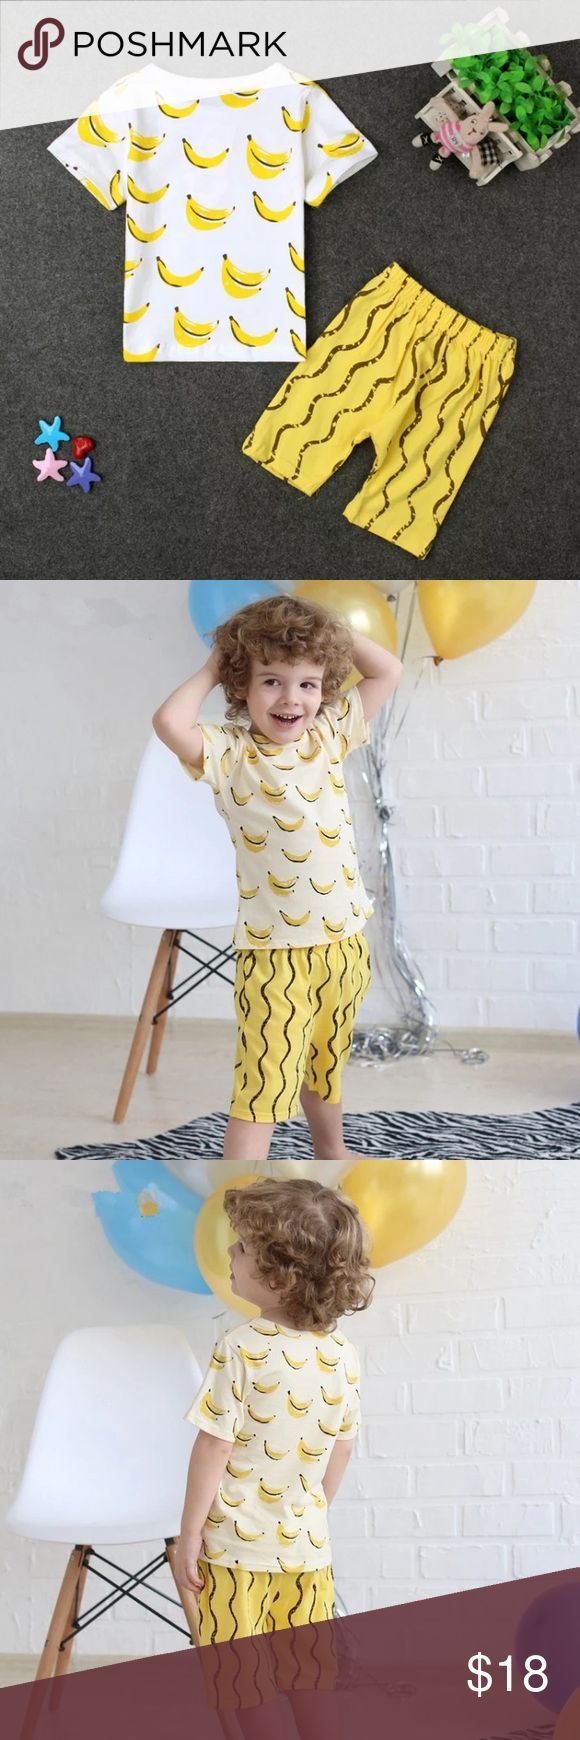 Banana Pattern Shorts & T-shirt Set Cute gender-neutral pattern on this 100% cotton t-shirt and shorts set. Size 6-7y Matching Sets